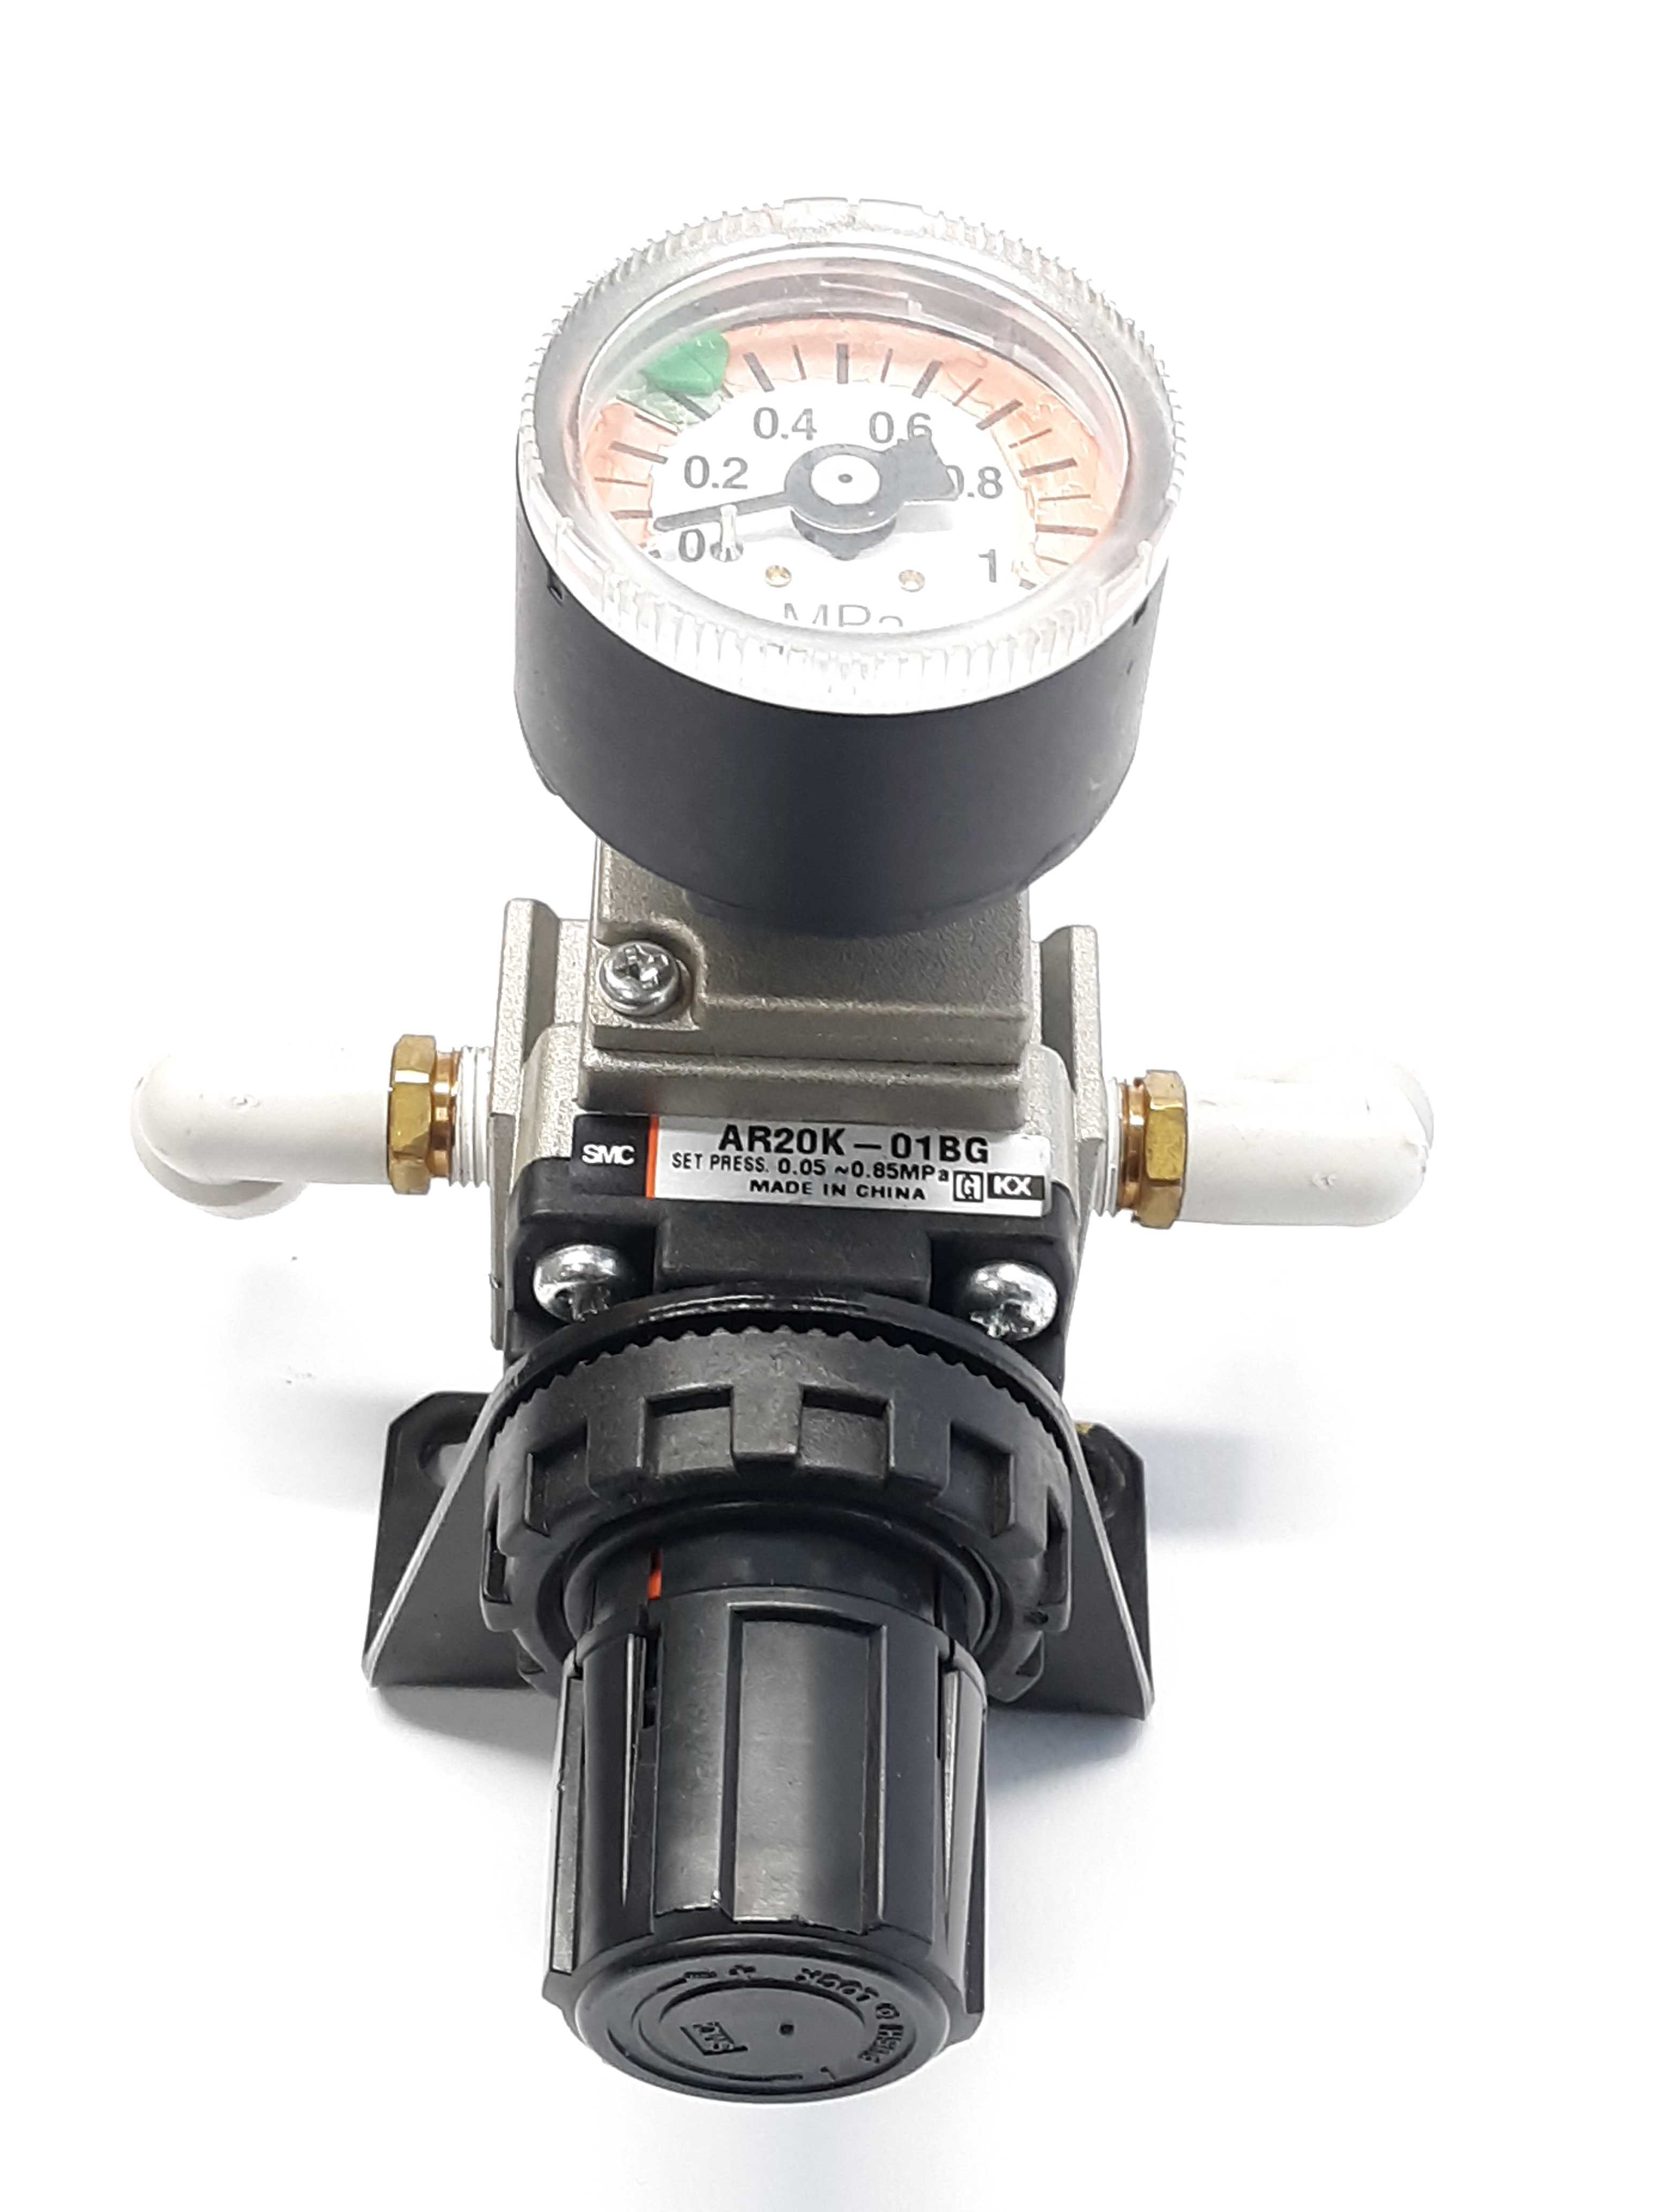 SMC AR20K-01BG Air Regulator